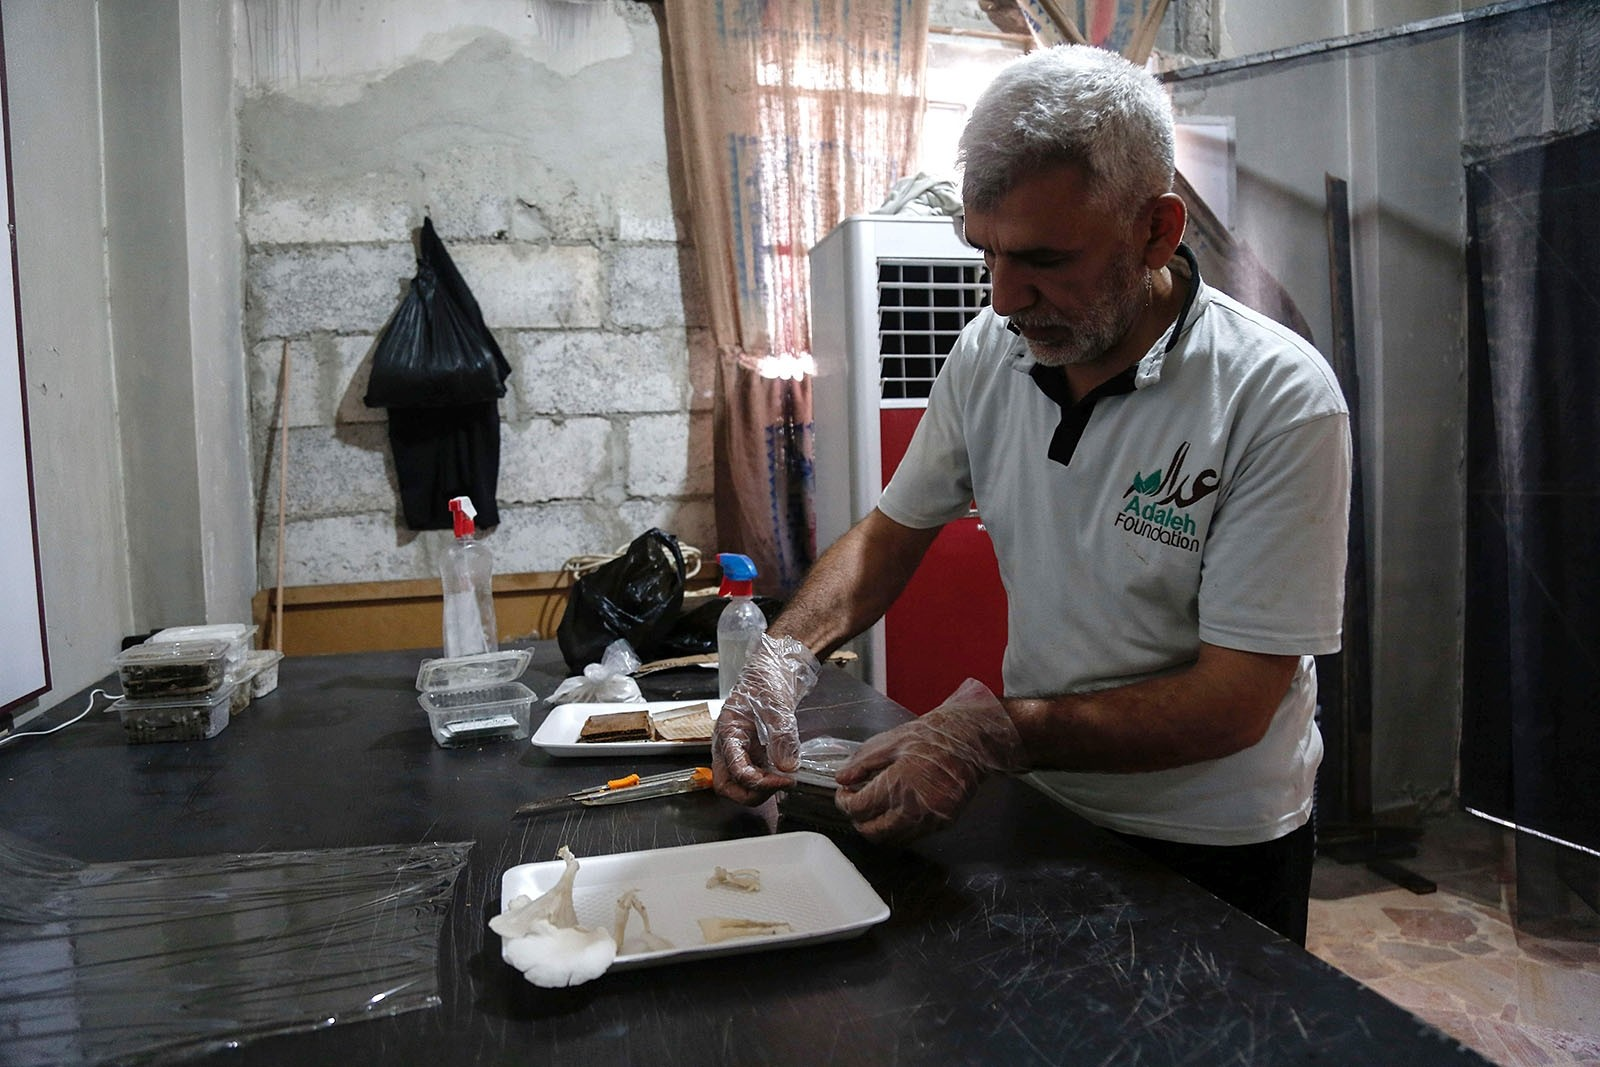 Syrians swap meat for mushrooms in hardship